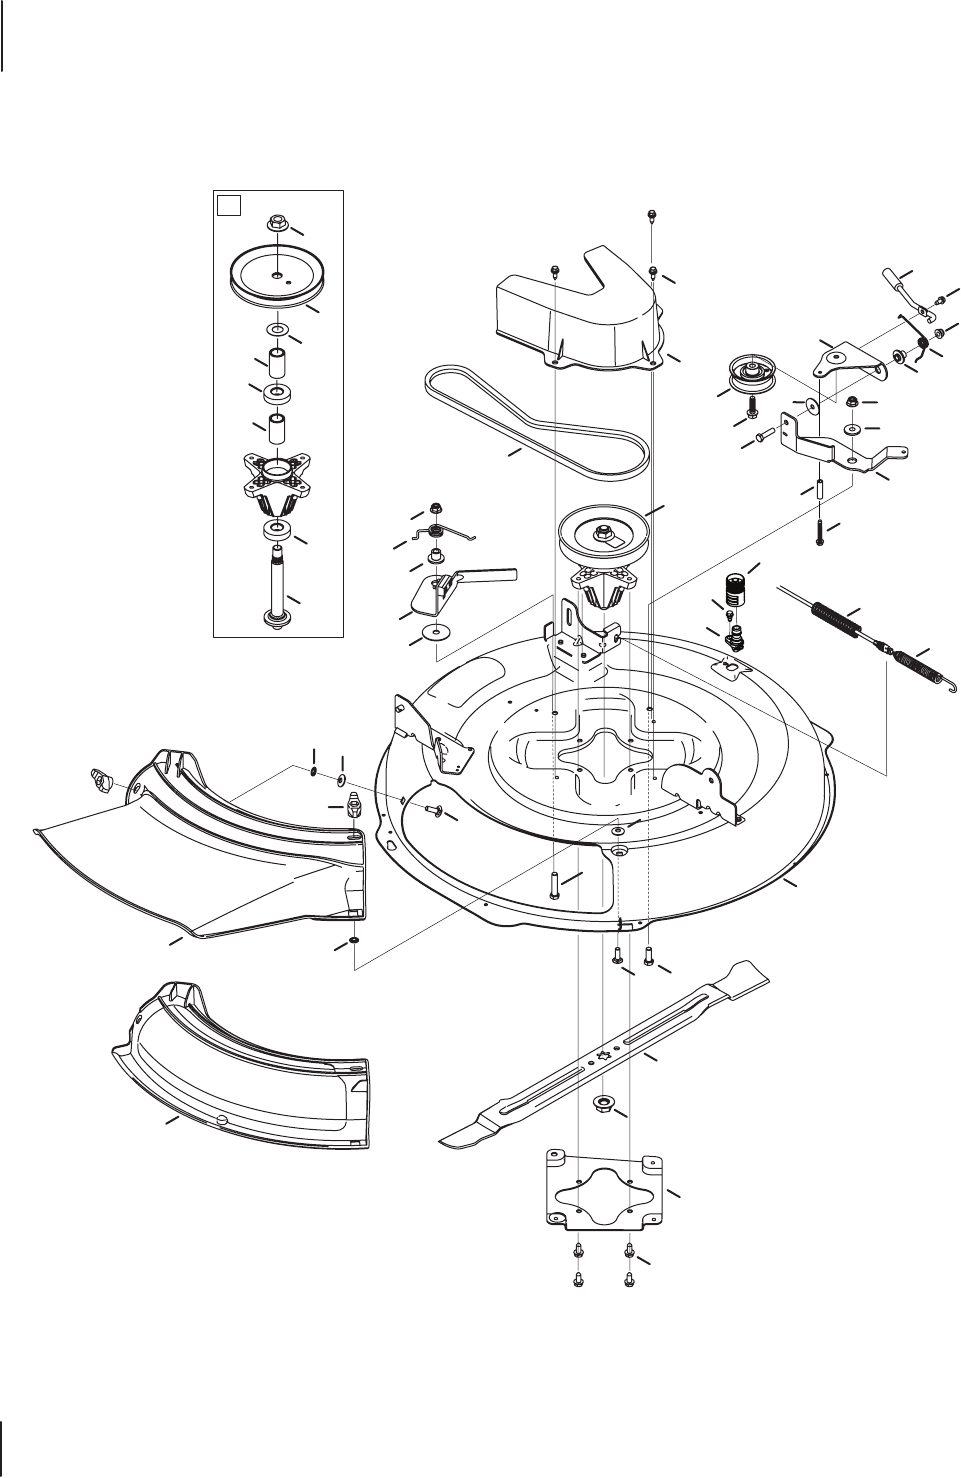 Page 14 of Cub Cadet Lawn Mower CC30 User Guide